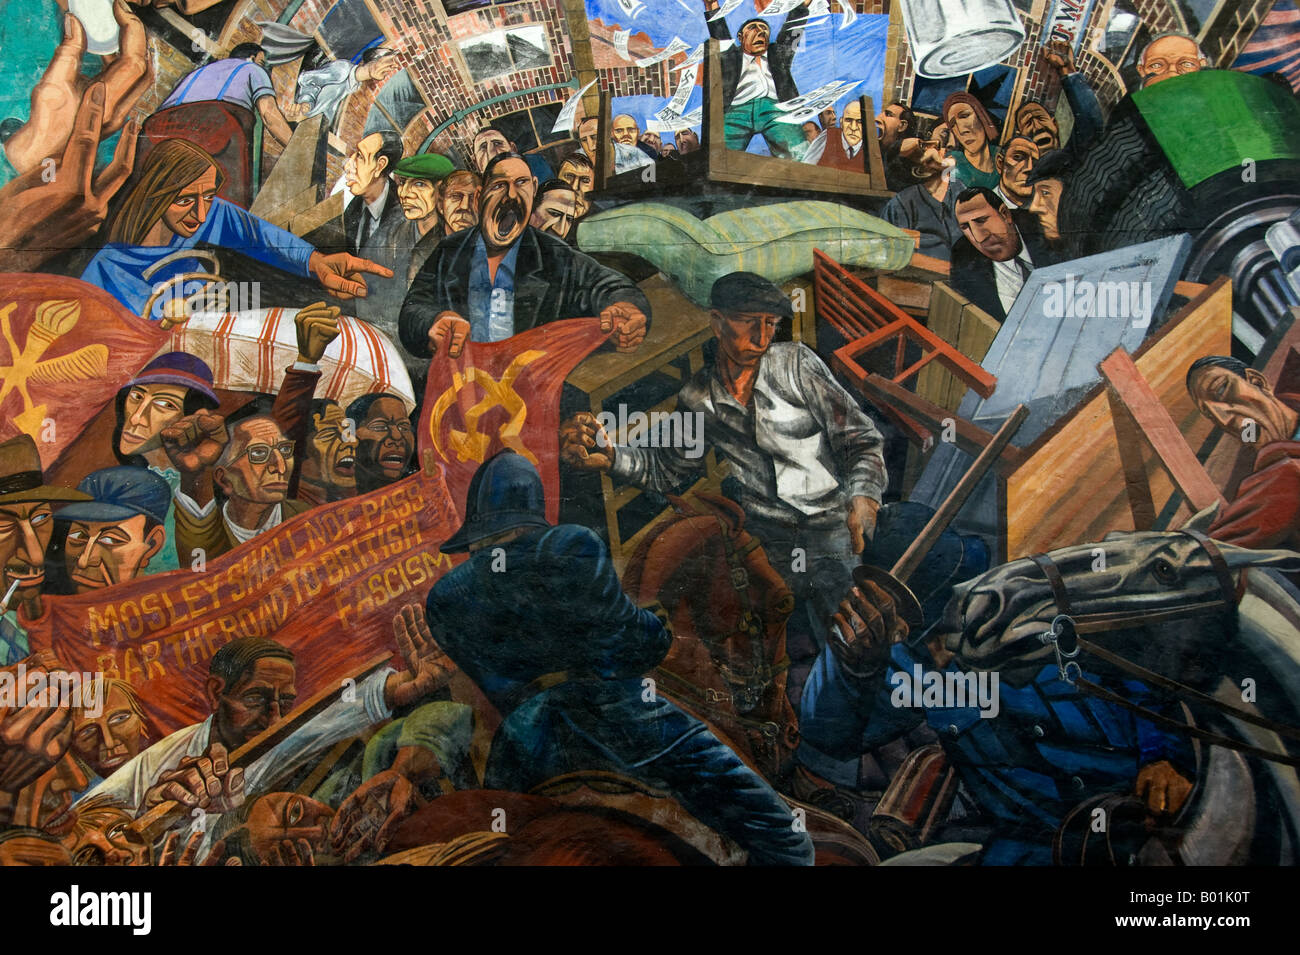 Detail of the Cable Street Mural, depicting the Battle of Cable Street, 4 October 1936.  Mural by Simon Niziol - Stock Image